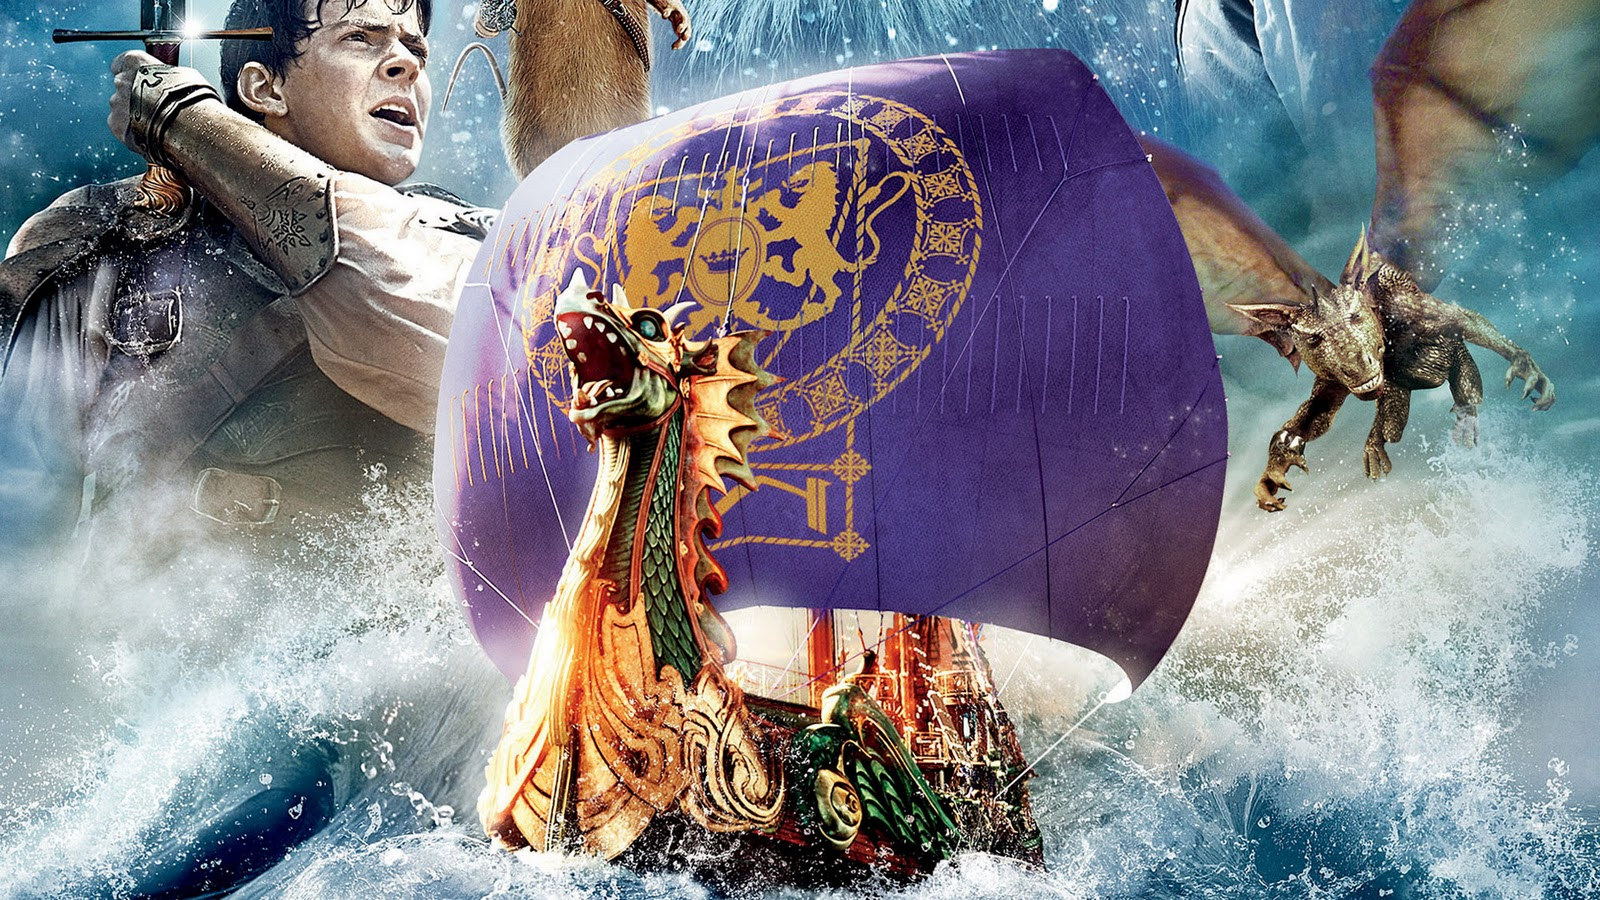 Wallpapers Photo Art The Chronicles Of Narnia Voyage